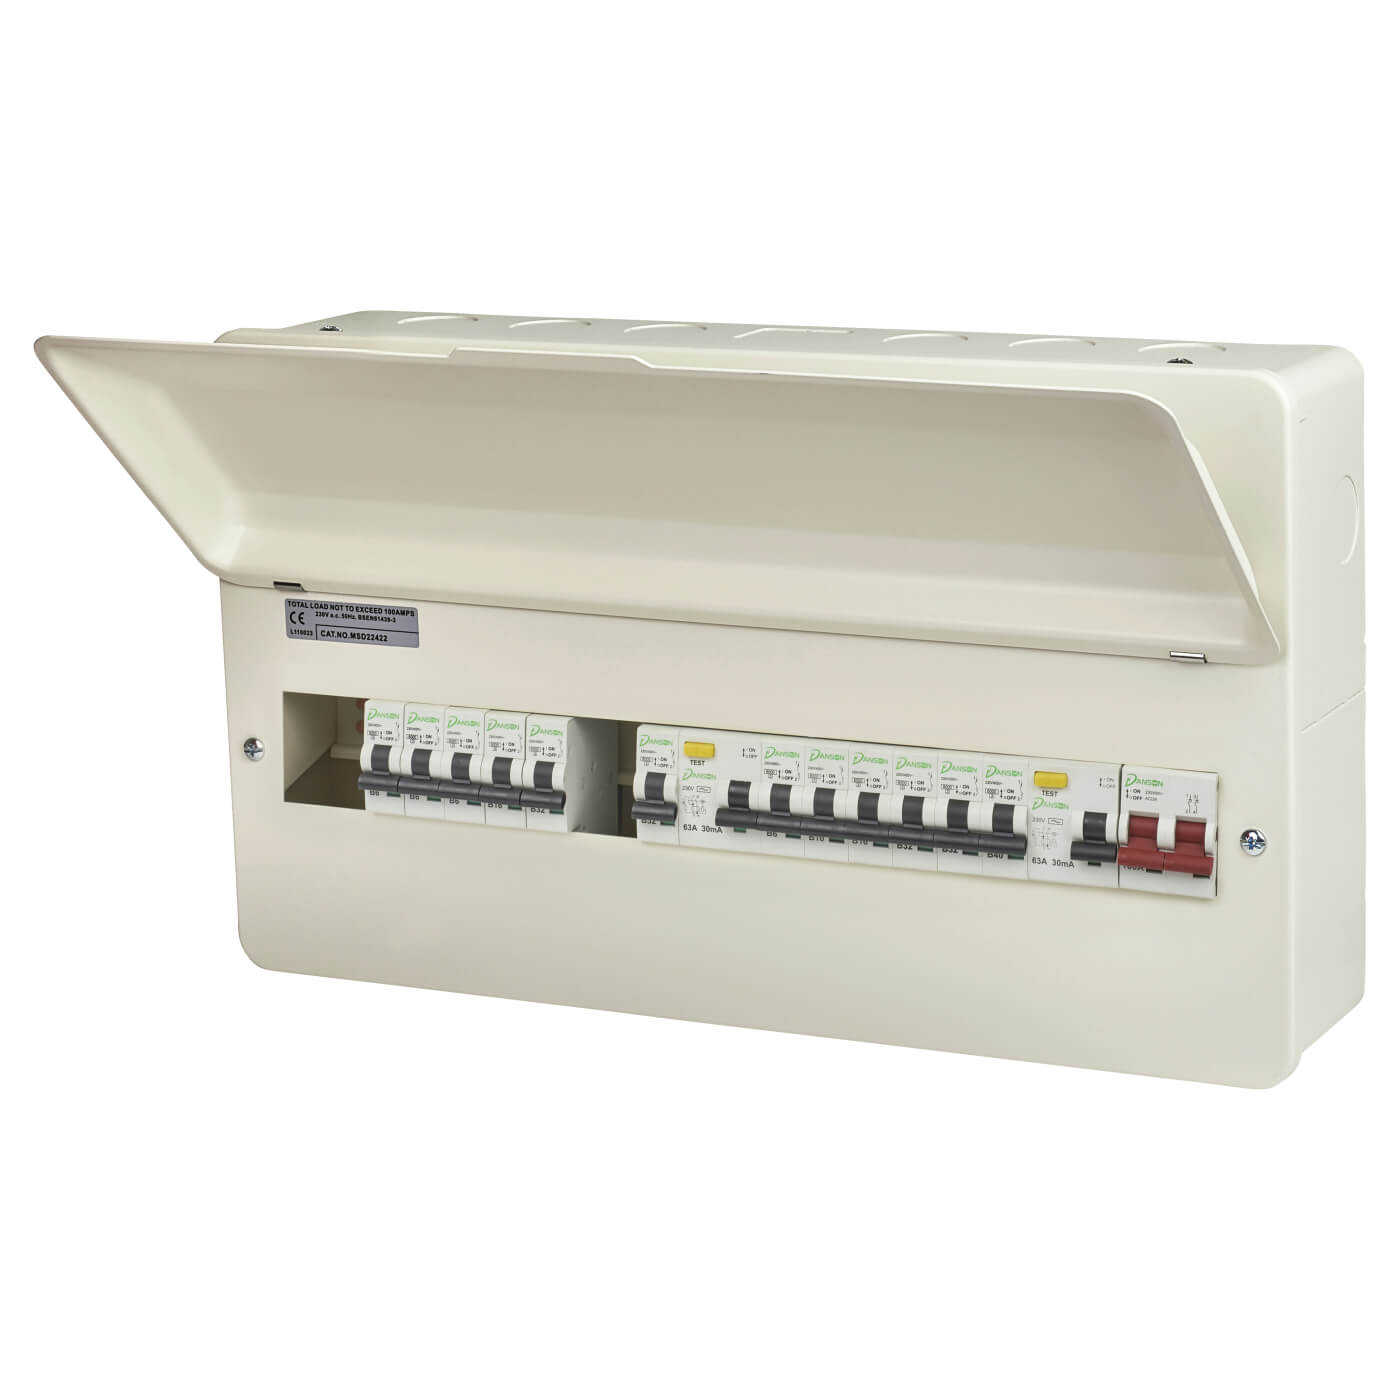 Danson 16 Way 100a Dual Split Load Metal Consumer Unit With 12 Mcbs Wiring Fused Spur Supply Back